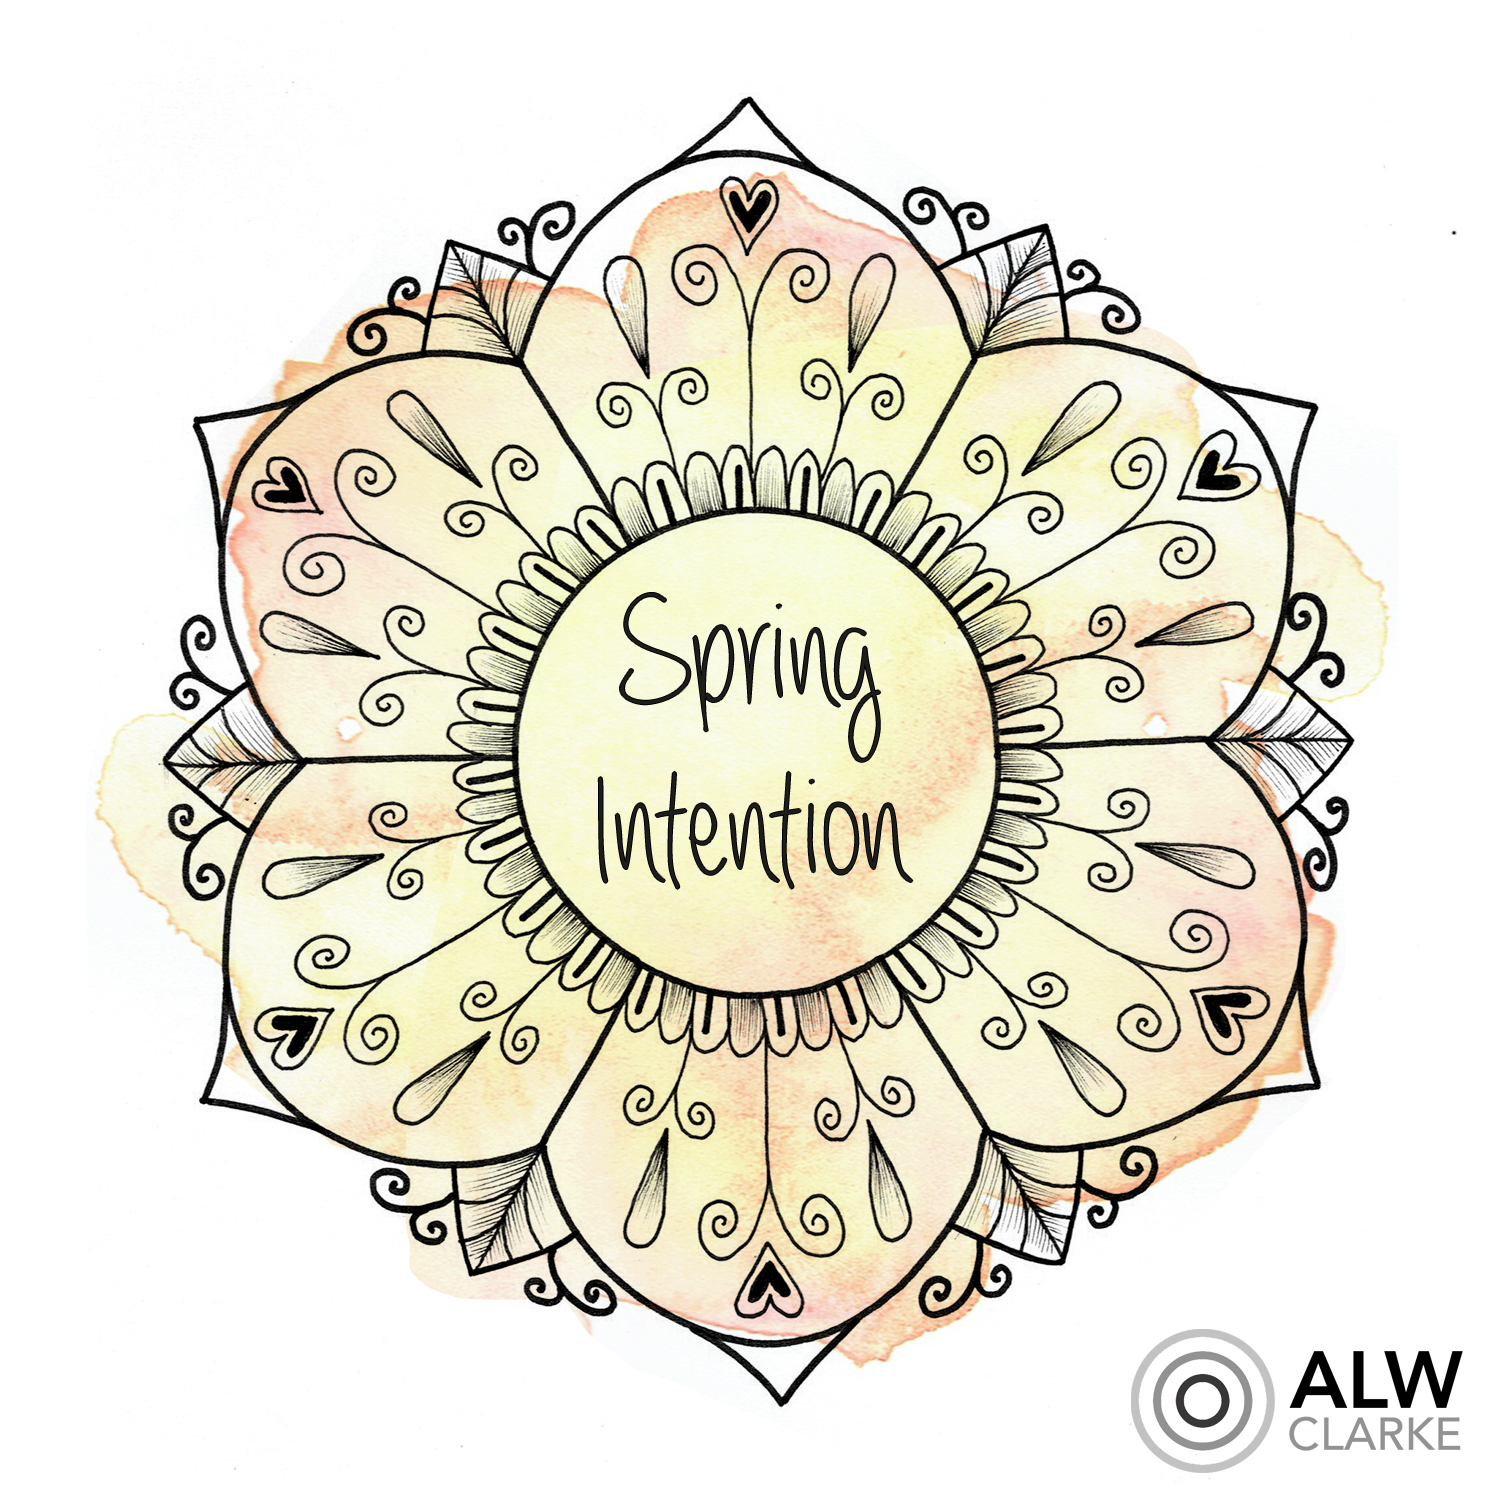 watercolour-Spring-intention.jpg